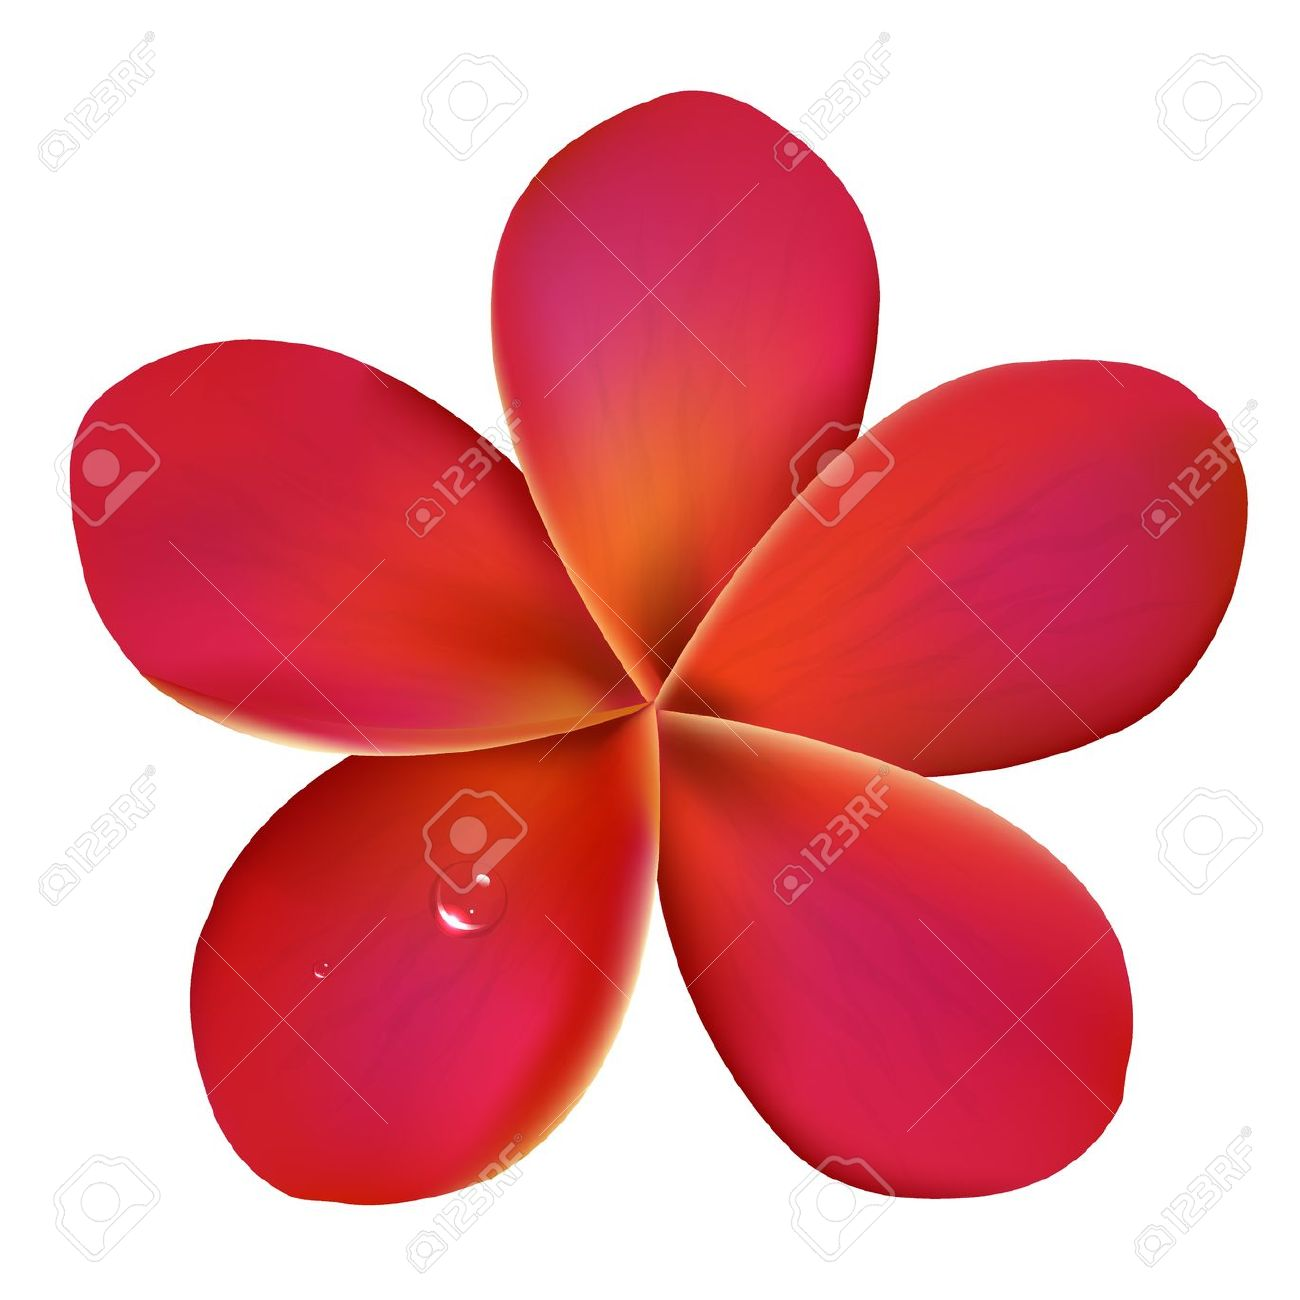 Pink Frangipani With Water Drops, Isolated On White Background.